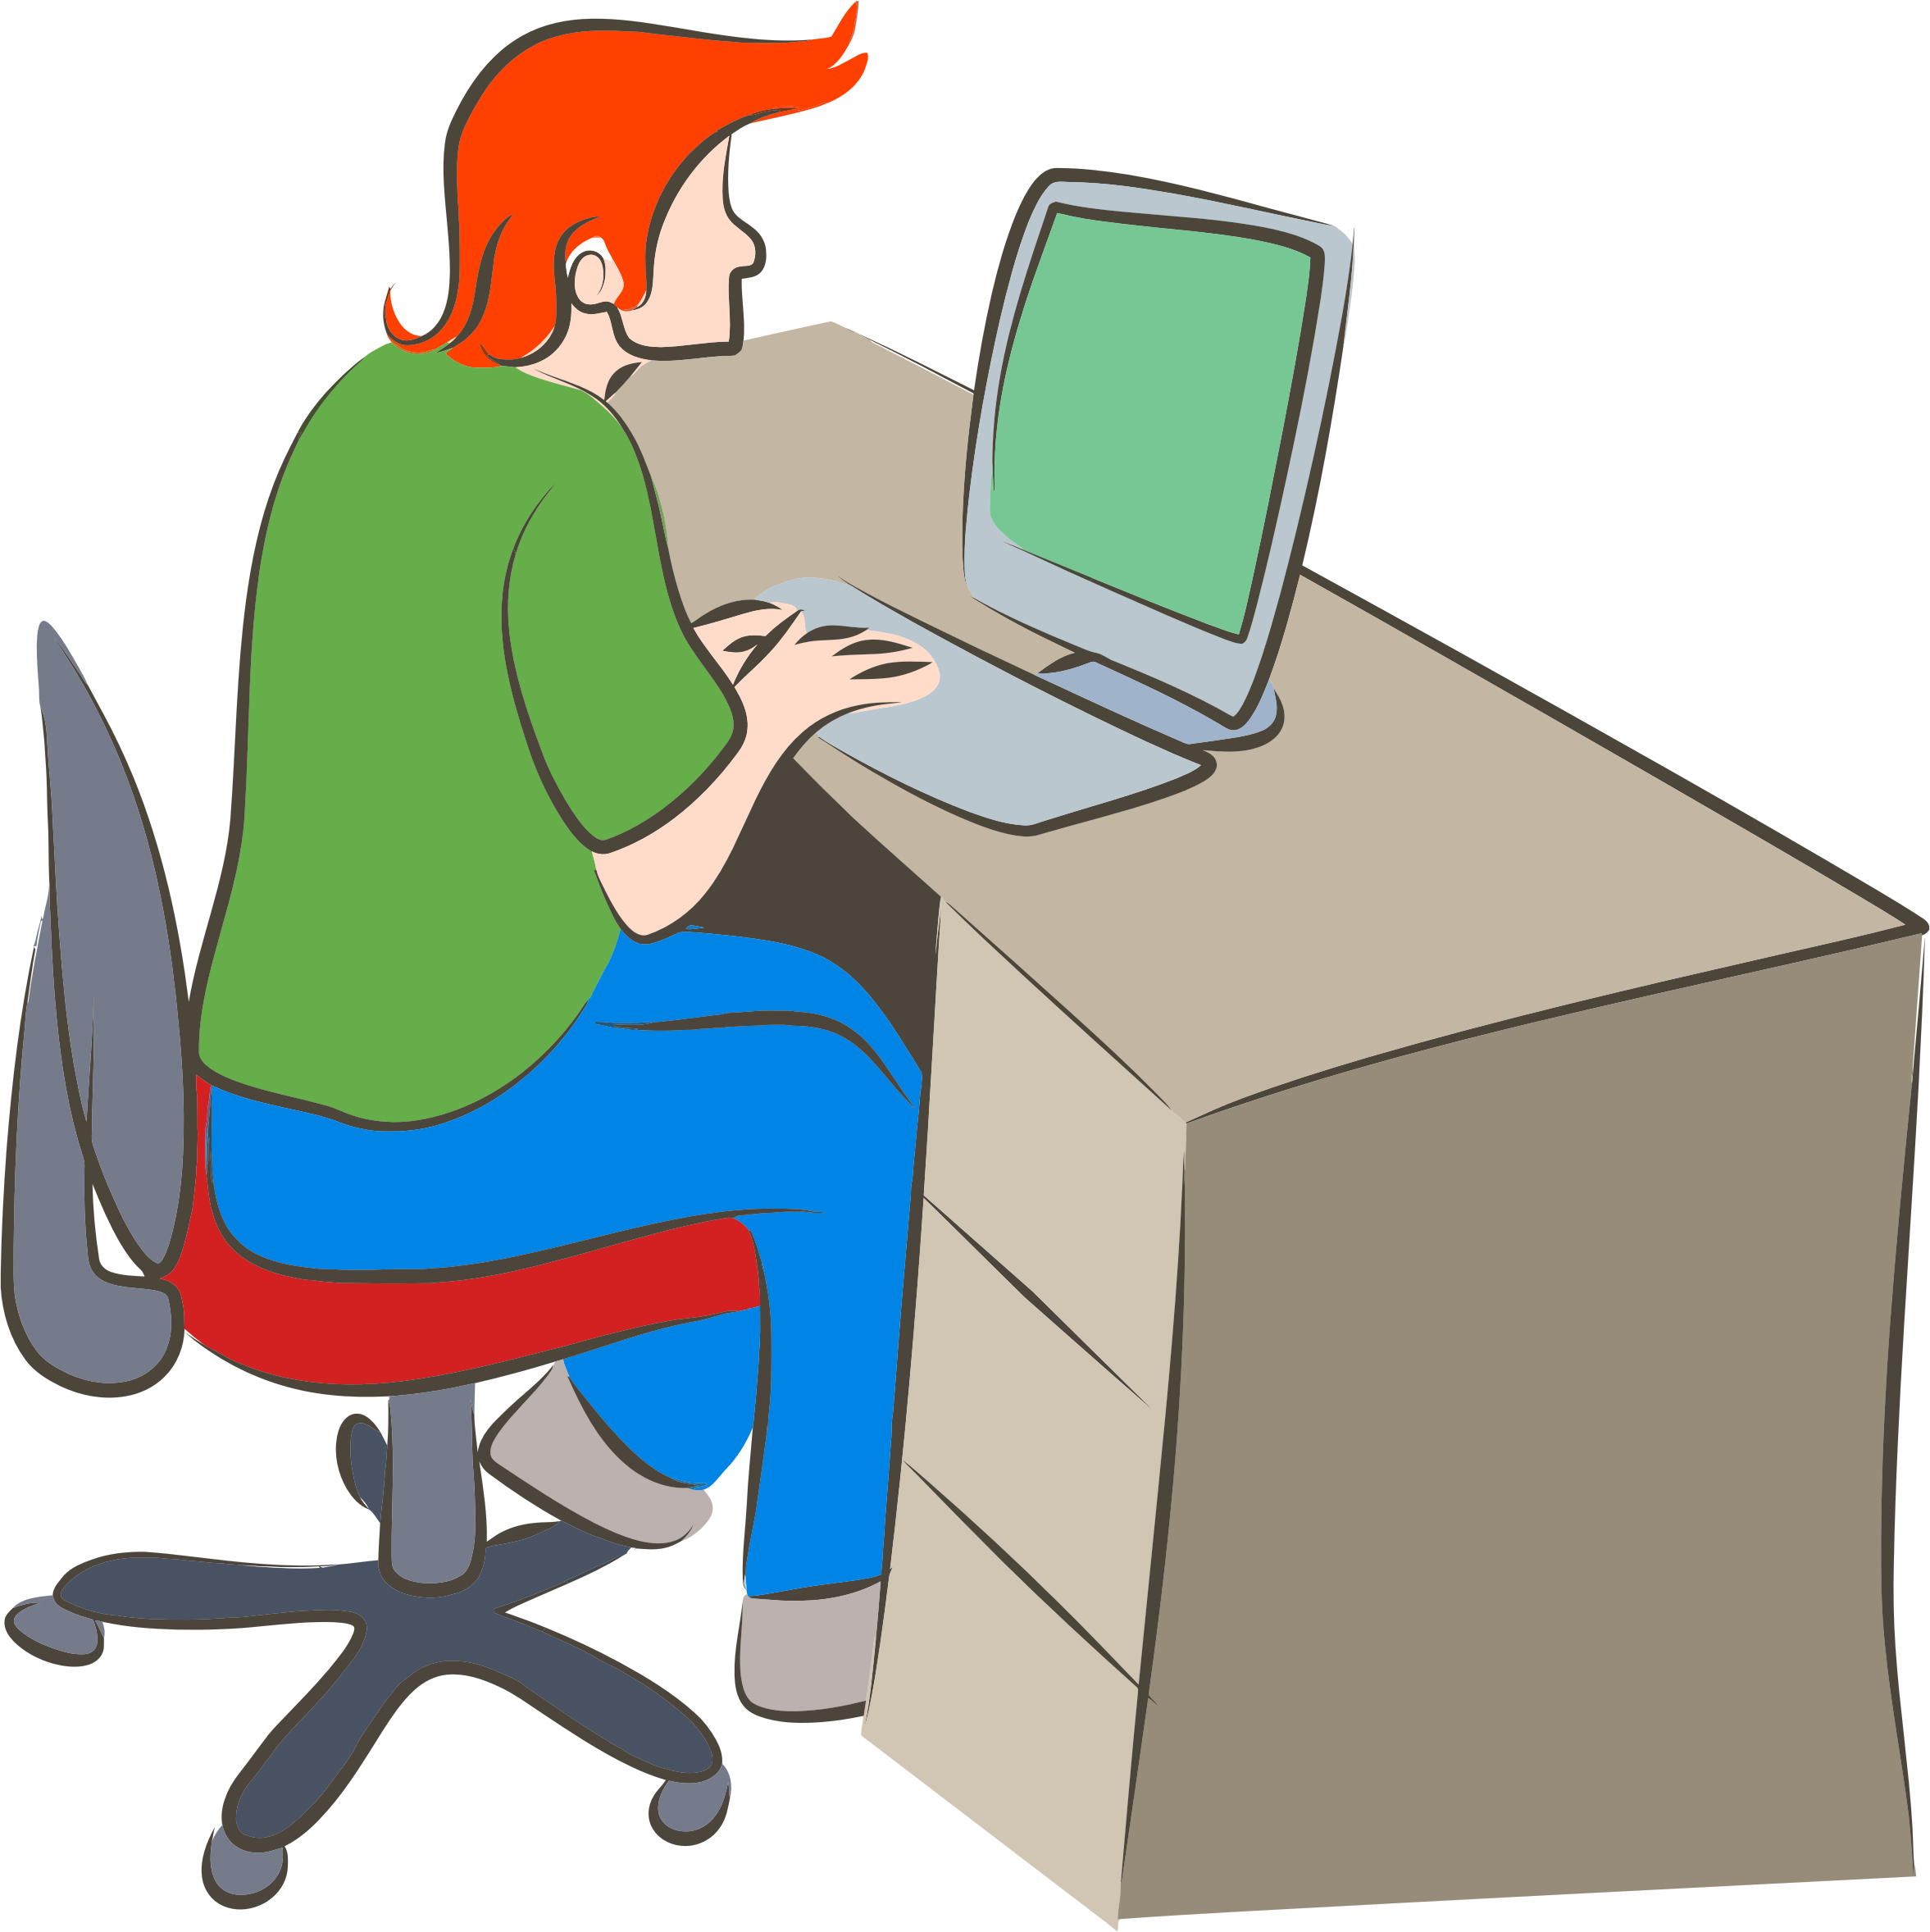 Person clipart computer, Person computer Transparent FREE.